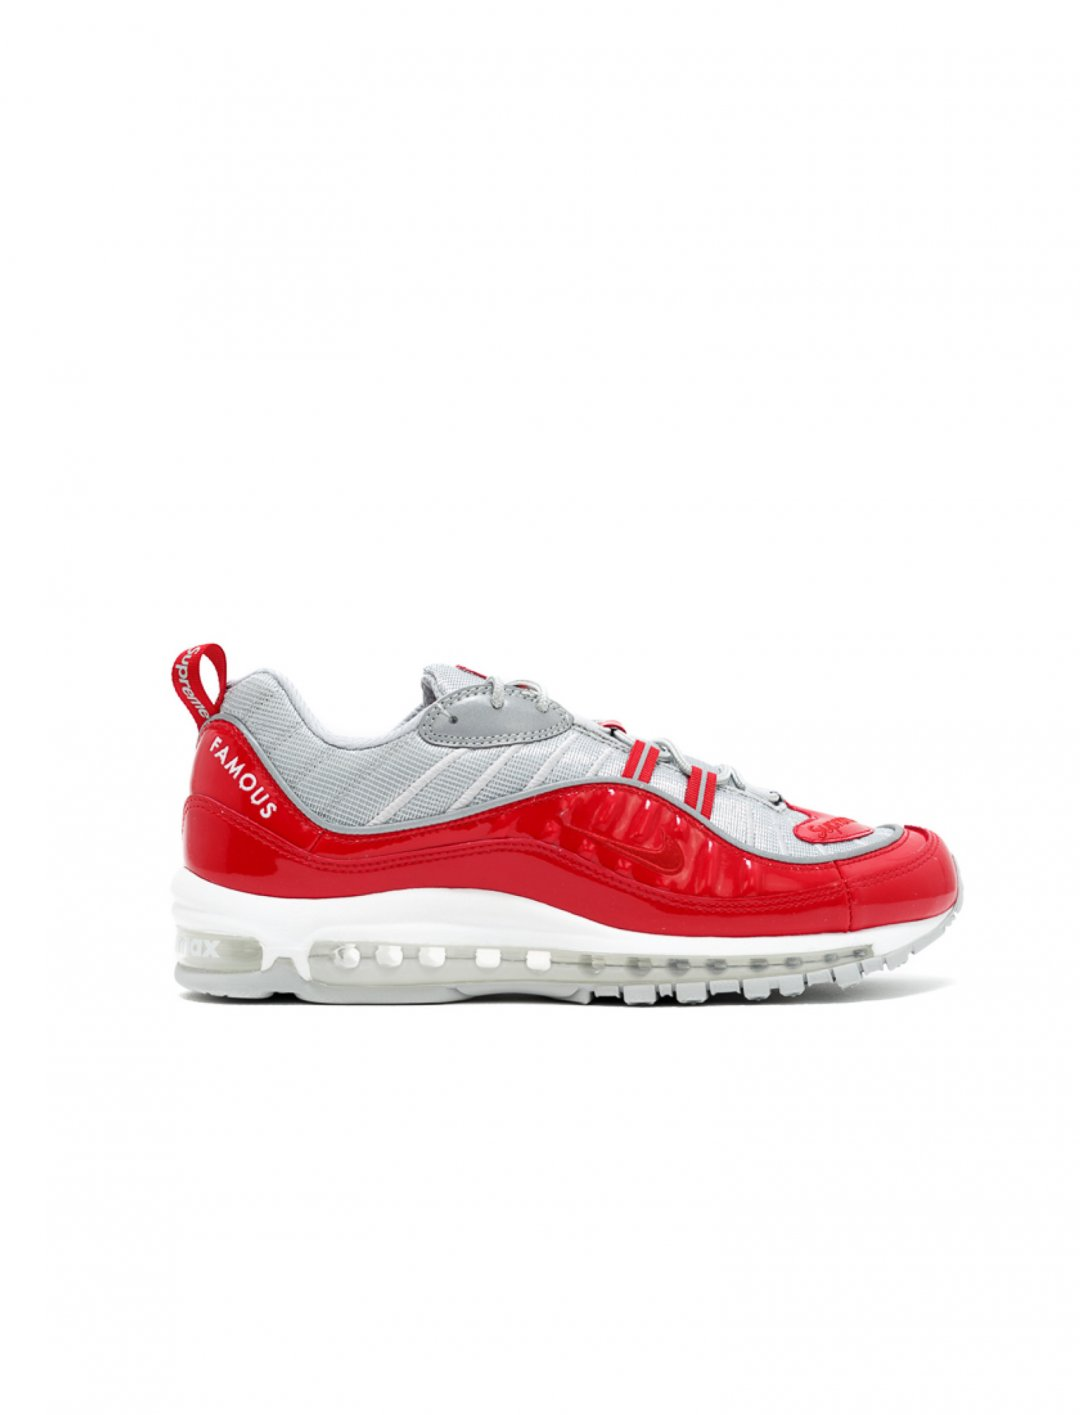 "Air Max 98 Sneakers {""id"":12,""product_section_id"":1,""name"":""Shoes"",""order"":12} Nike x Supreme"